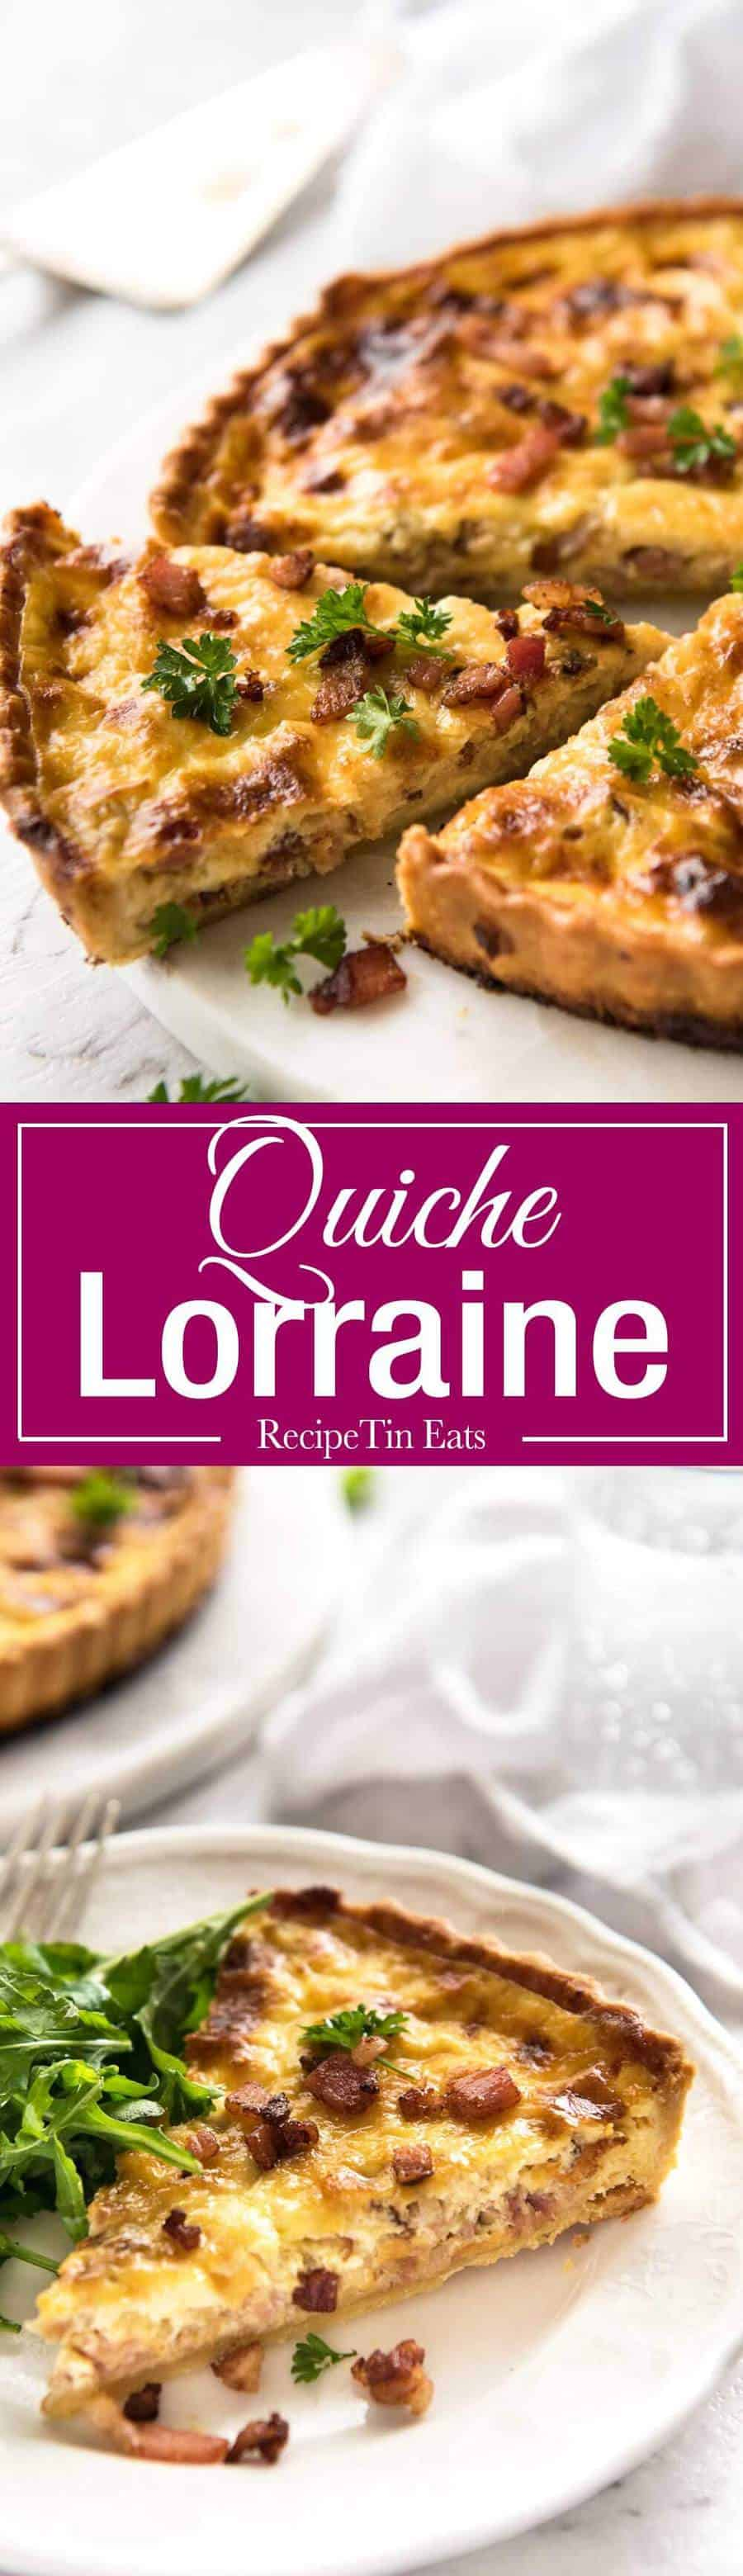 Easy Quiche Lorraine - A beautiful smooth, soft custard filling, this is the BEST easy Quiche Lorraine recipe you will ever try! recipetineats.com